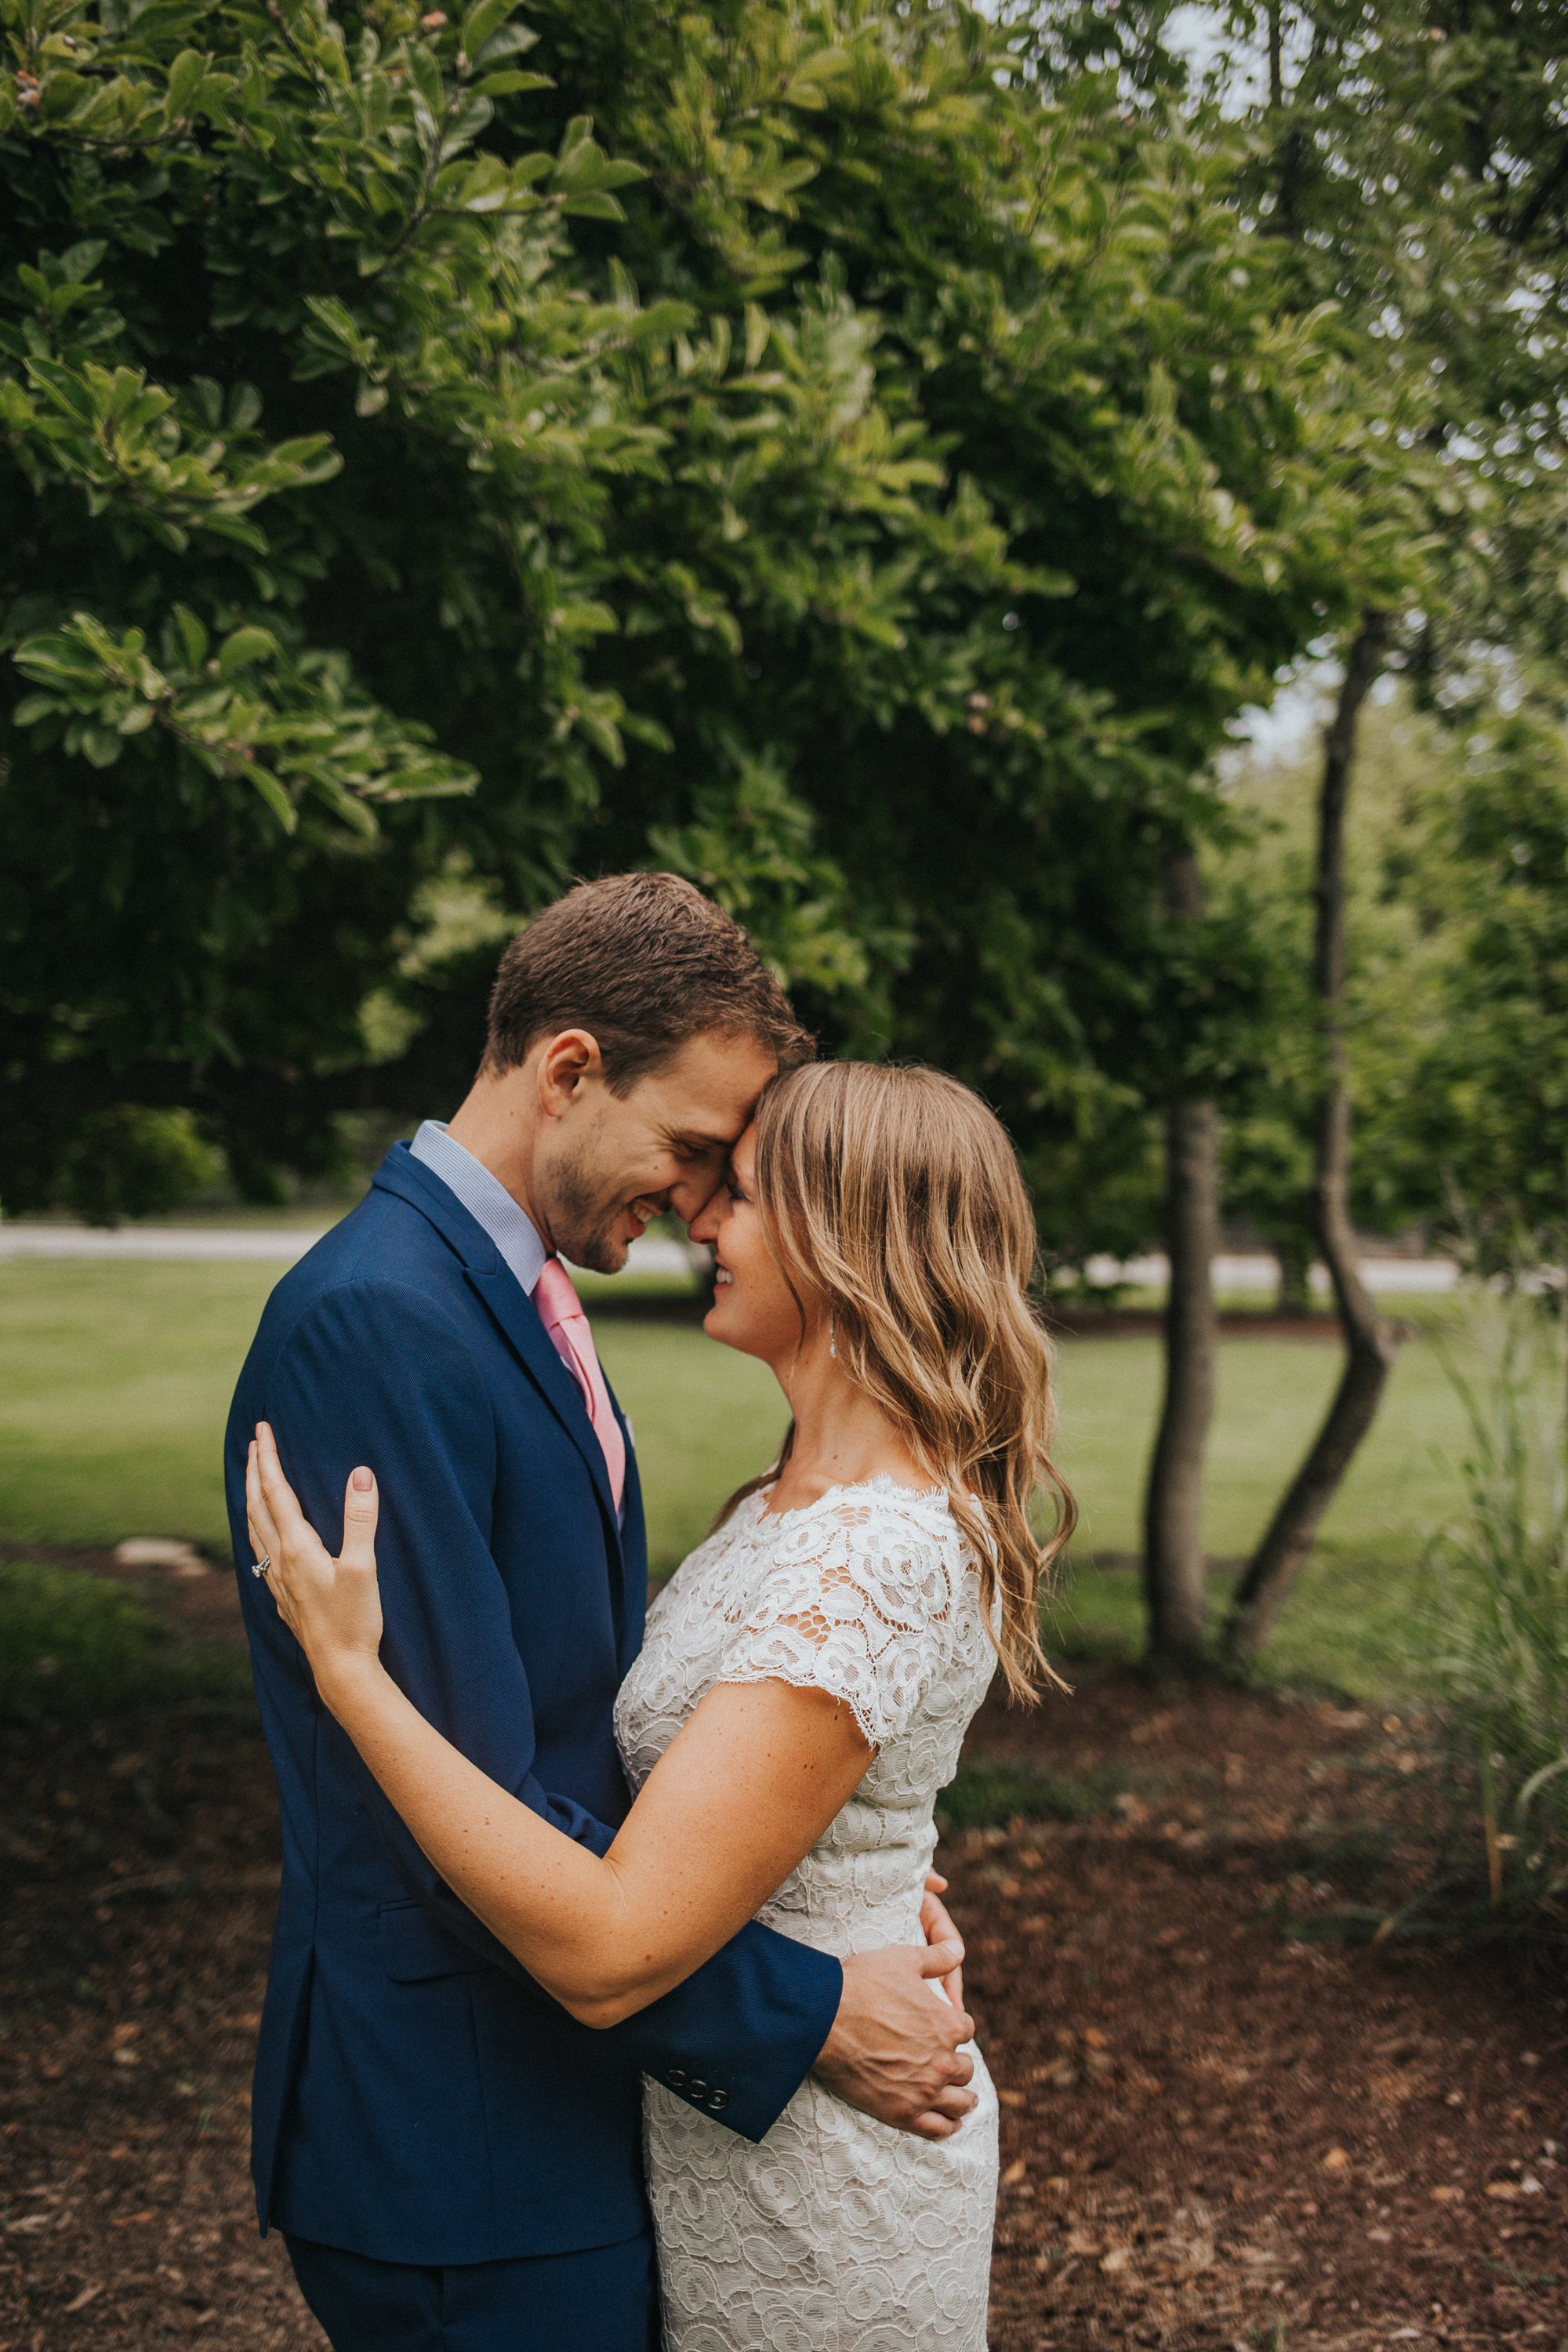 Eden Park Elopement in Cincinnati Photography by Bare Moments Photography